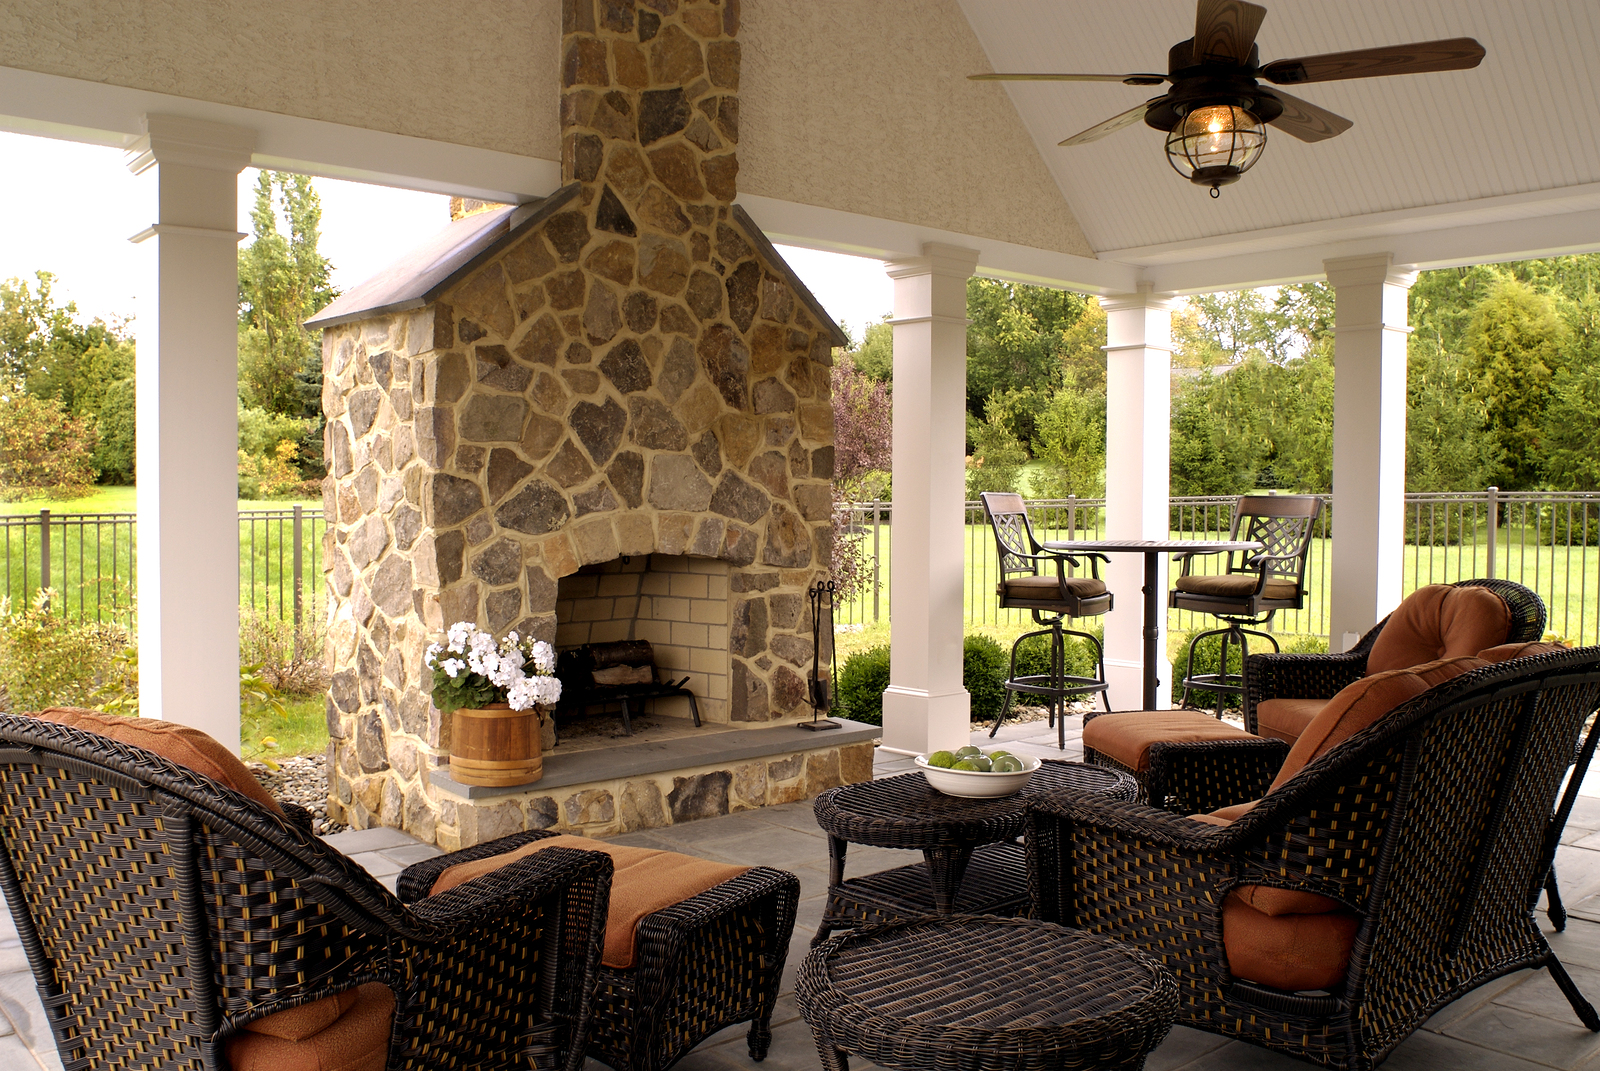 outdoor living design tips and ideas - pool quest